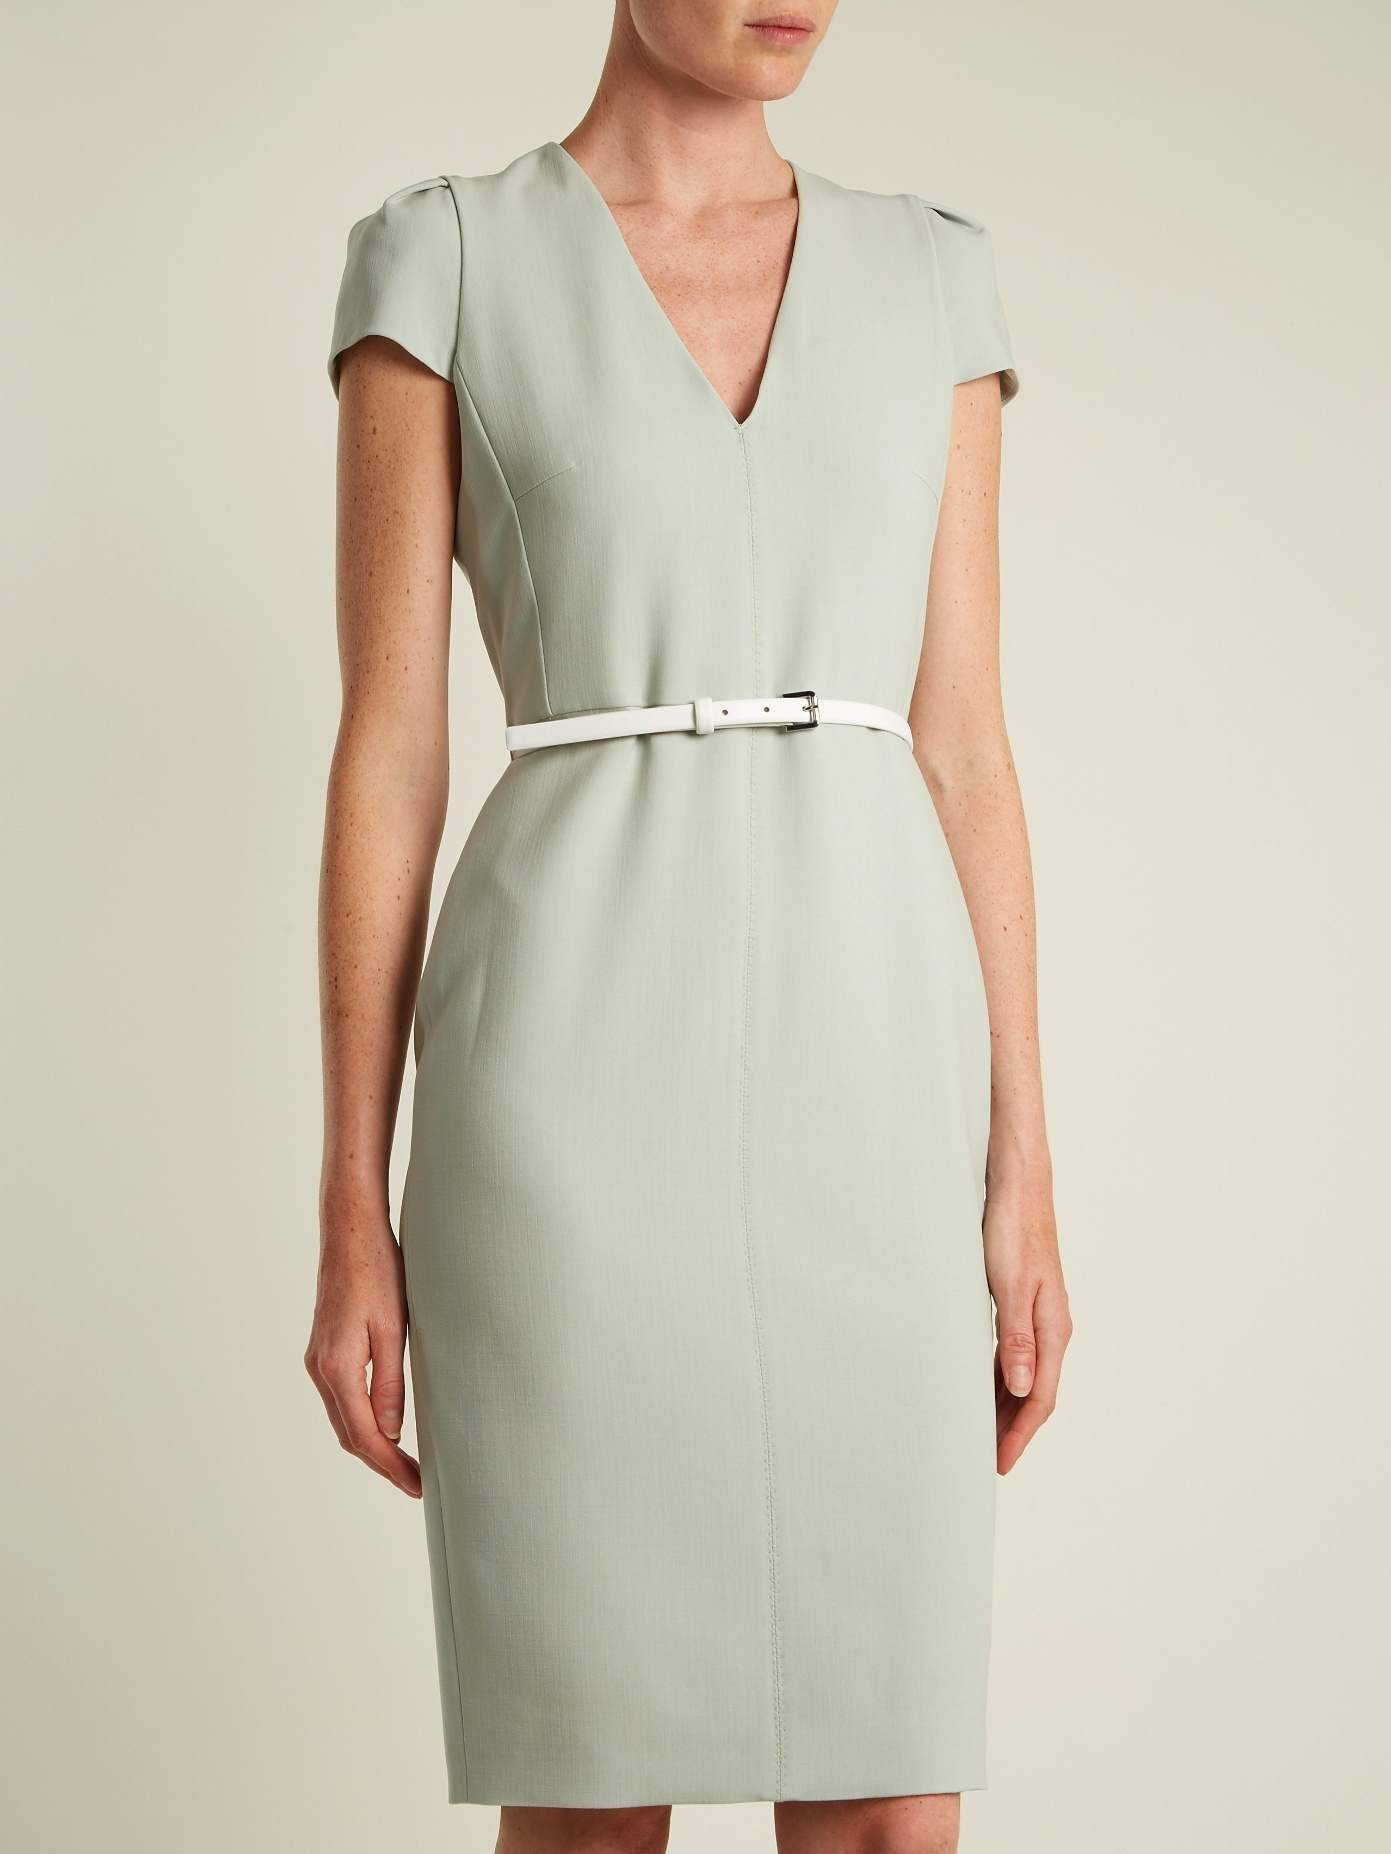 【国内発送】MAX MARA Teorema dress Mint-green